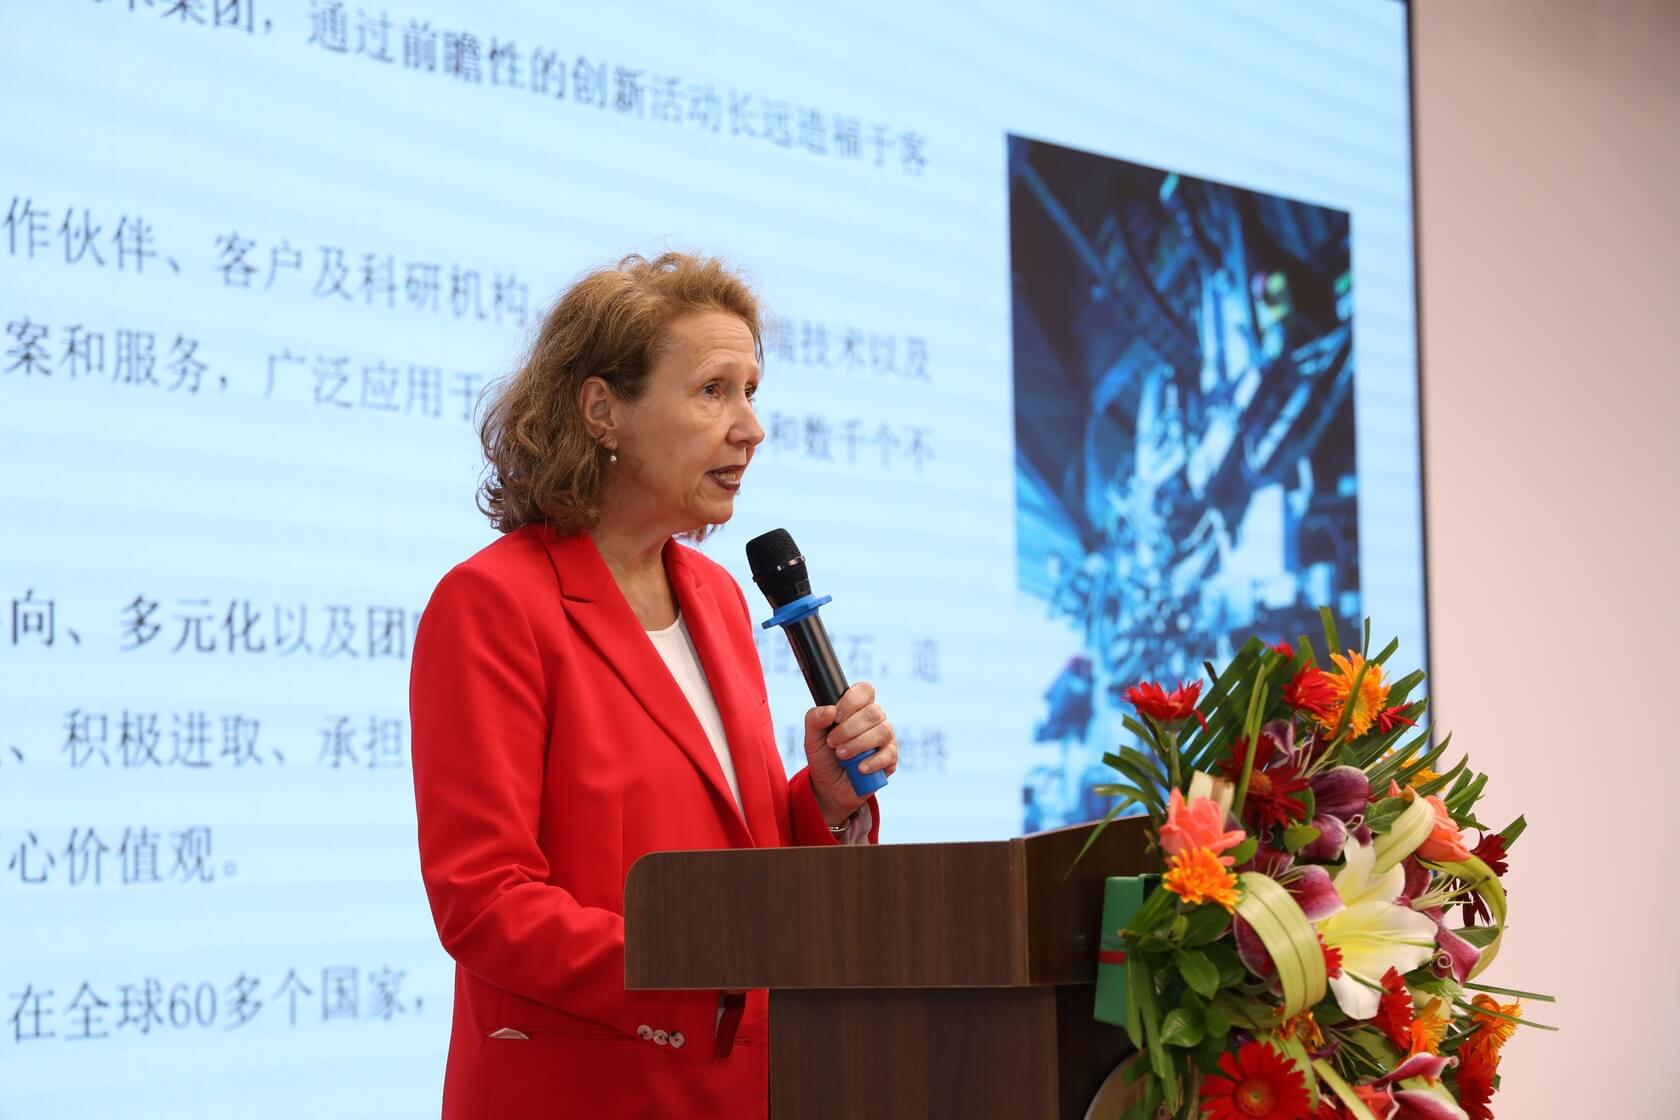 Bettina delivered speech on the seminar